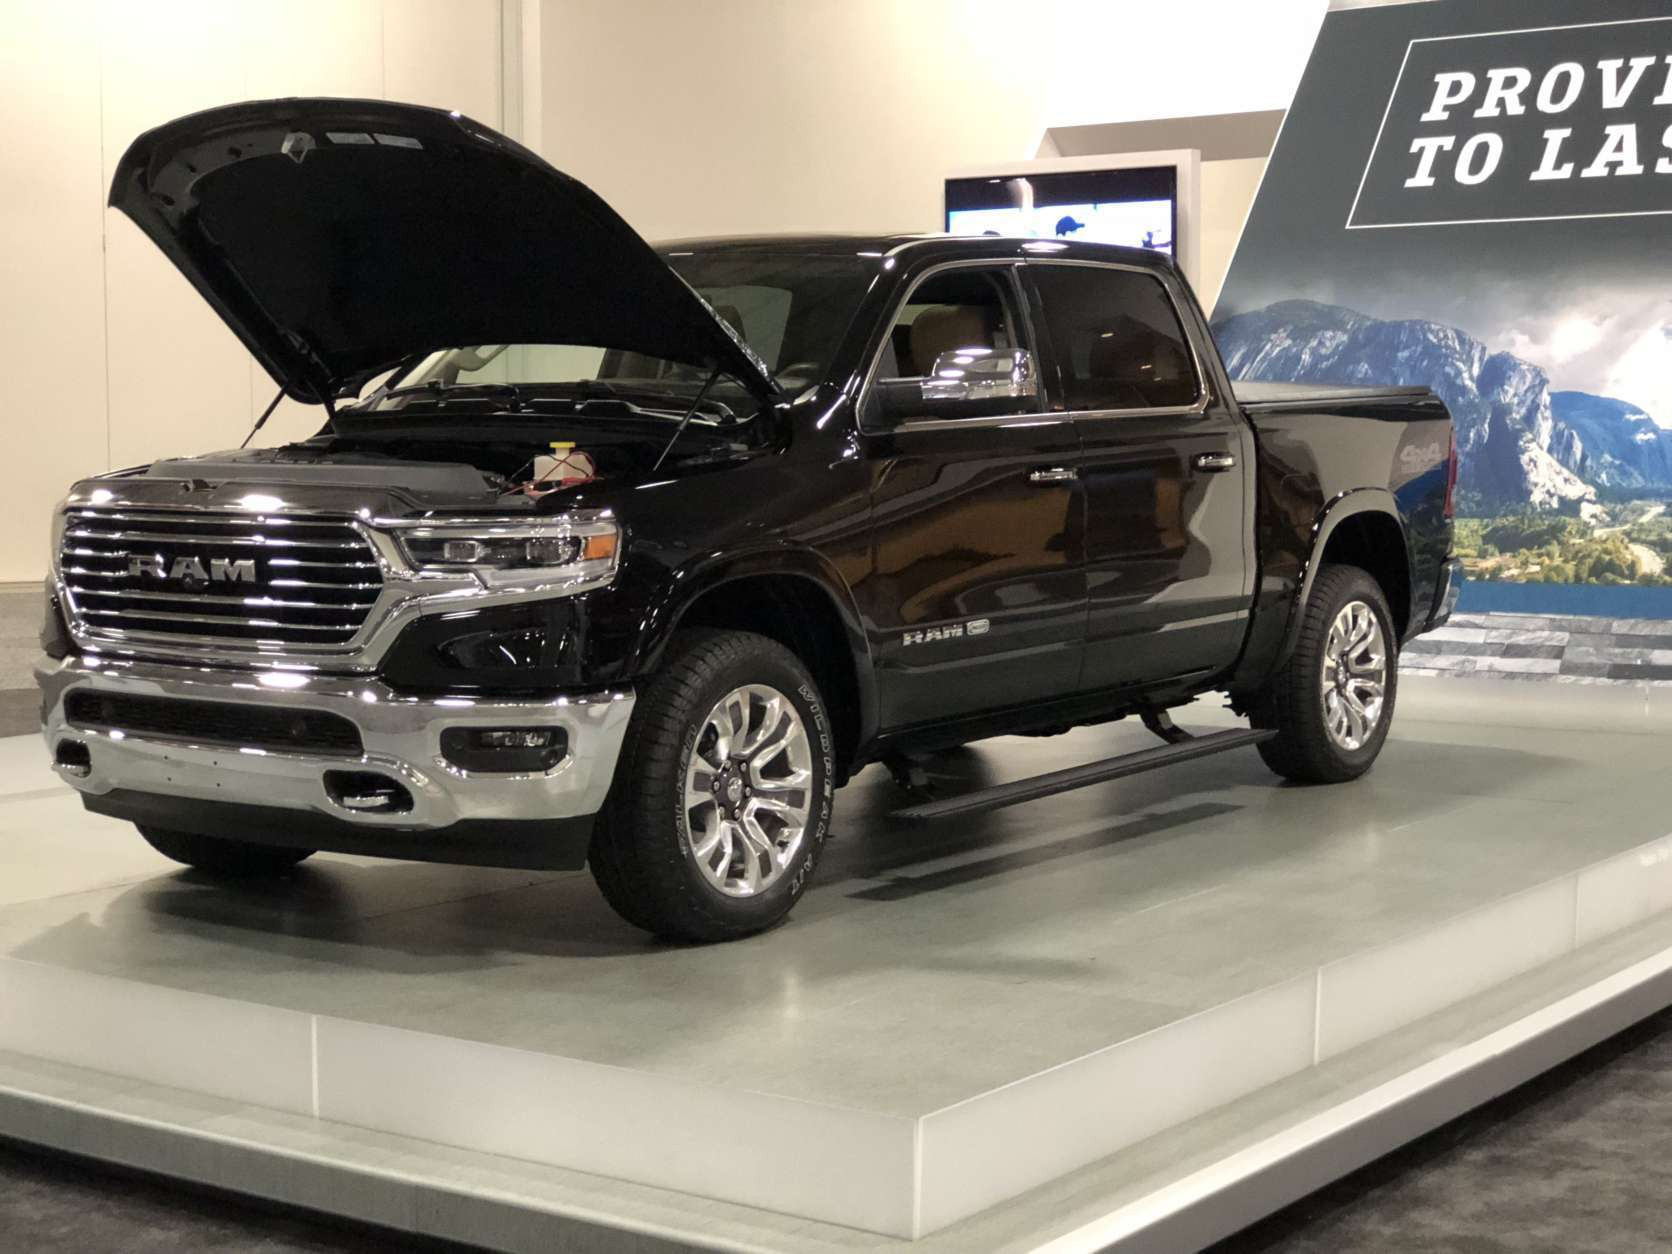 2019 Dodge Ram (WTOP/Mike Parris)